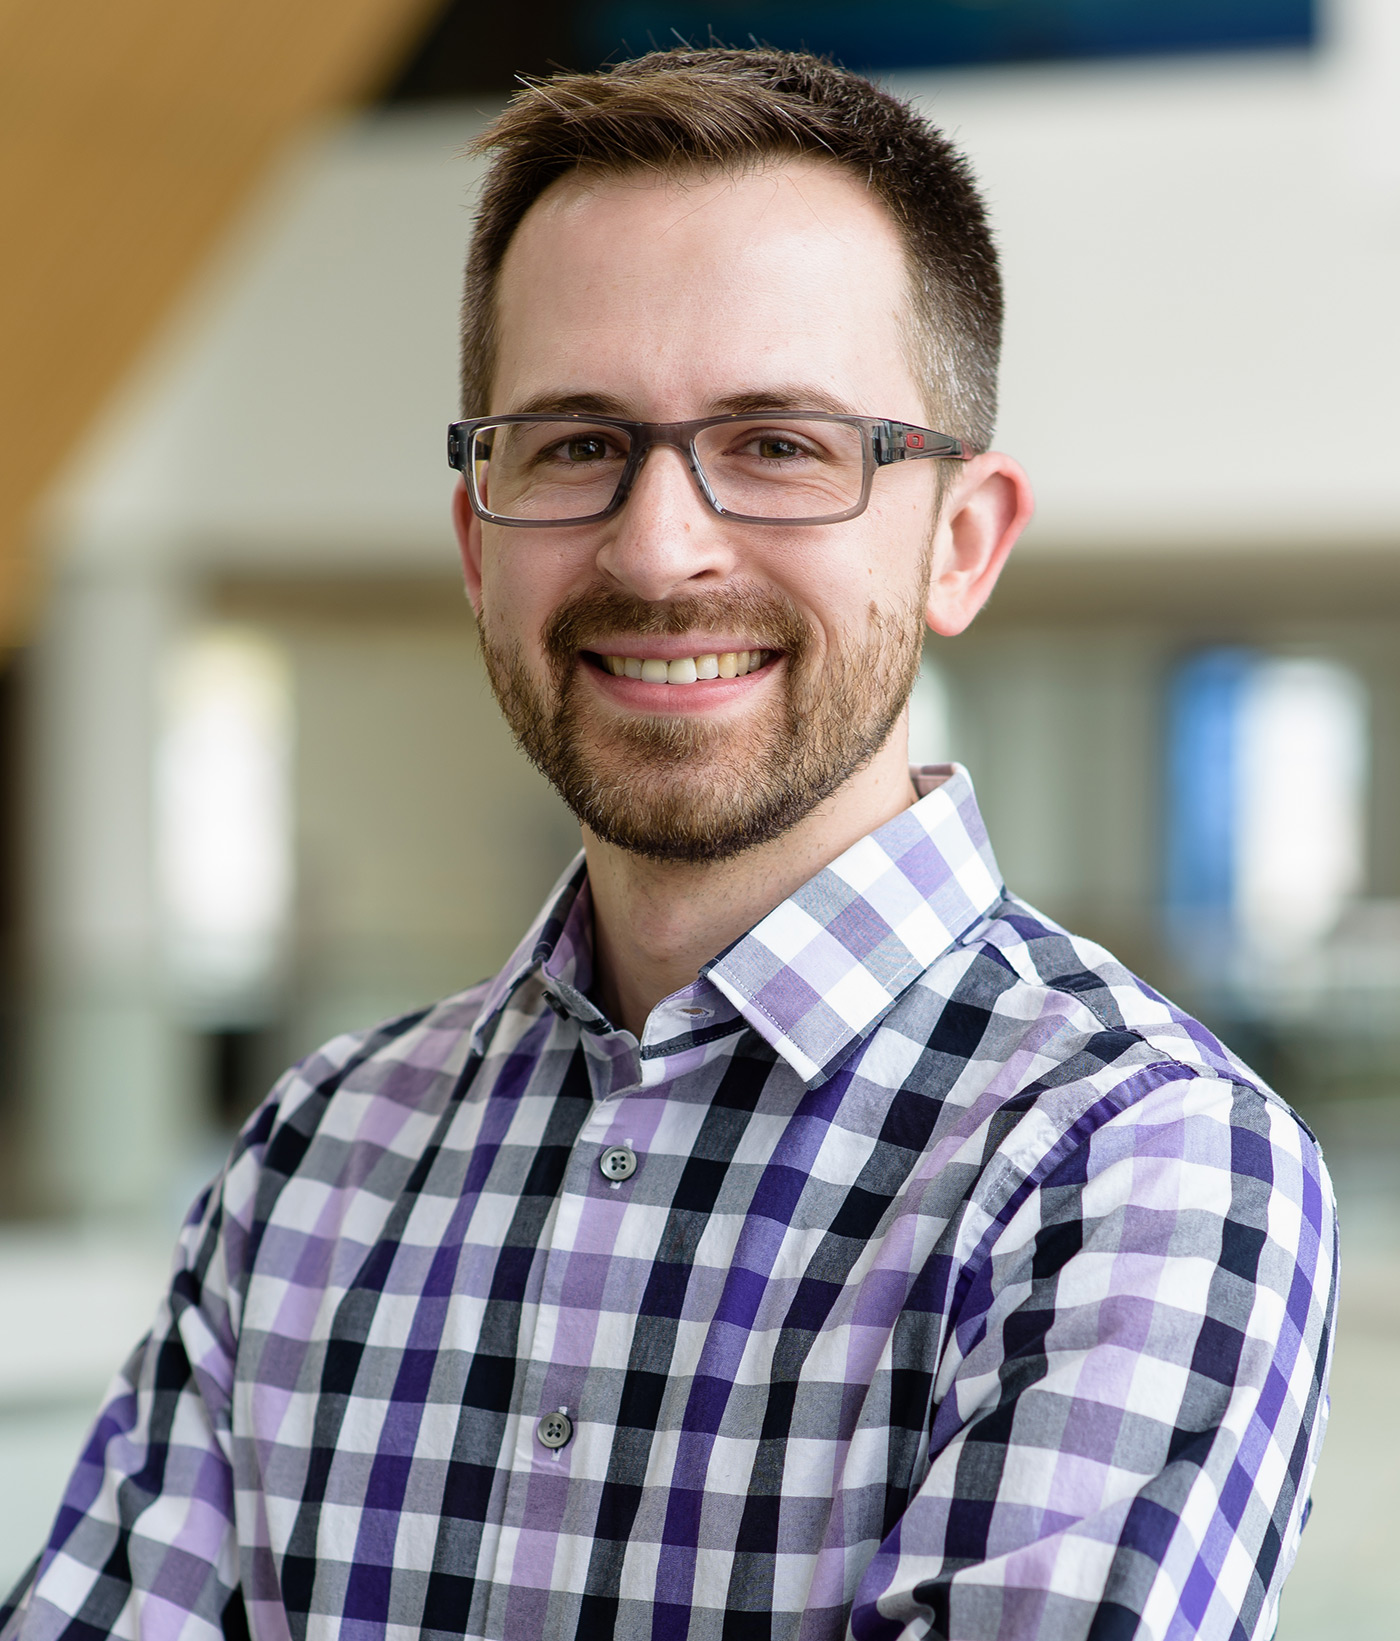 Christopher Hansen, UMass Lowell Engineering Professor headshot photo